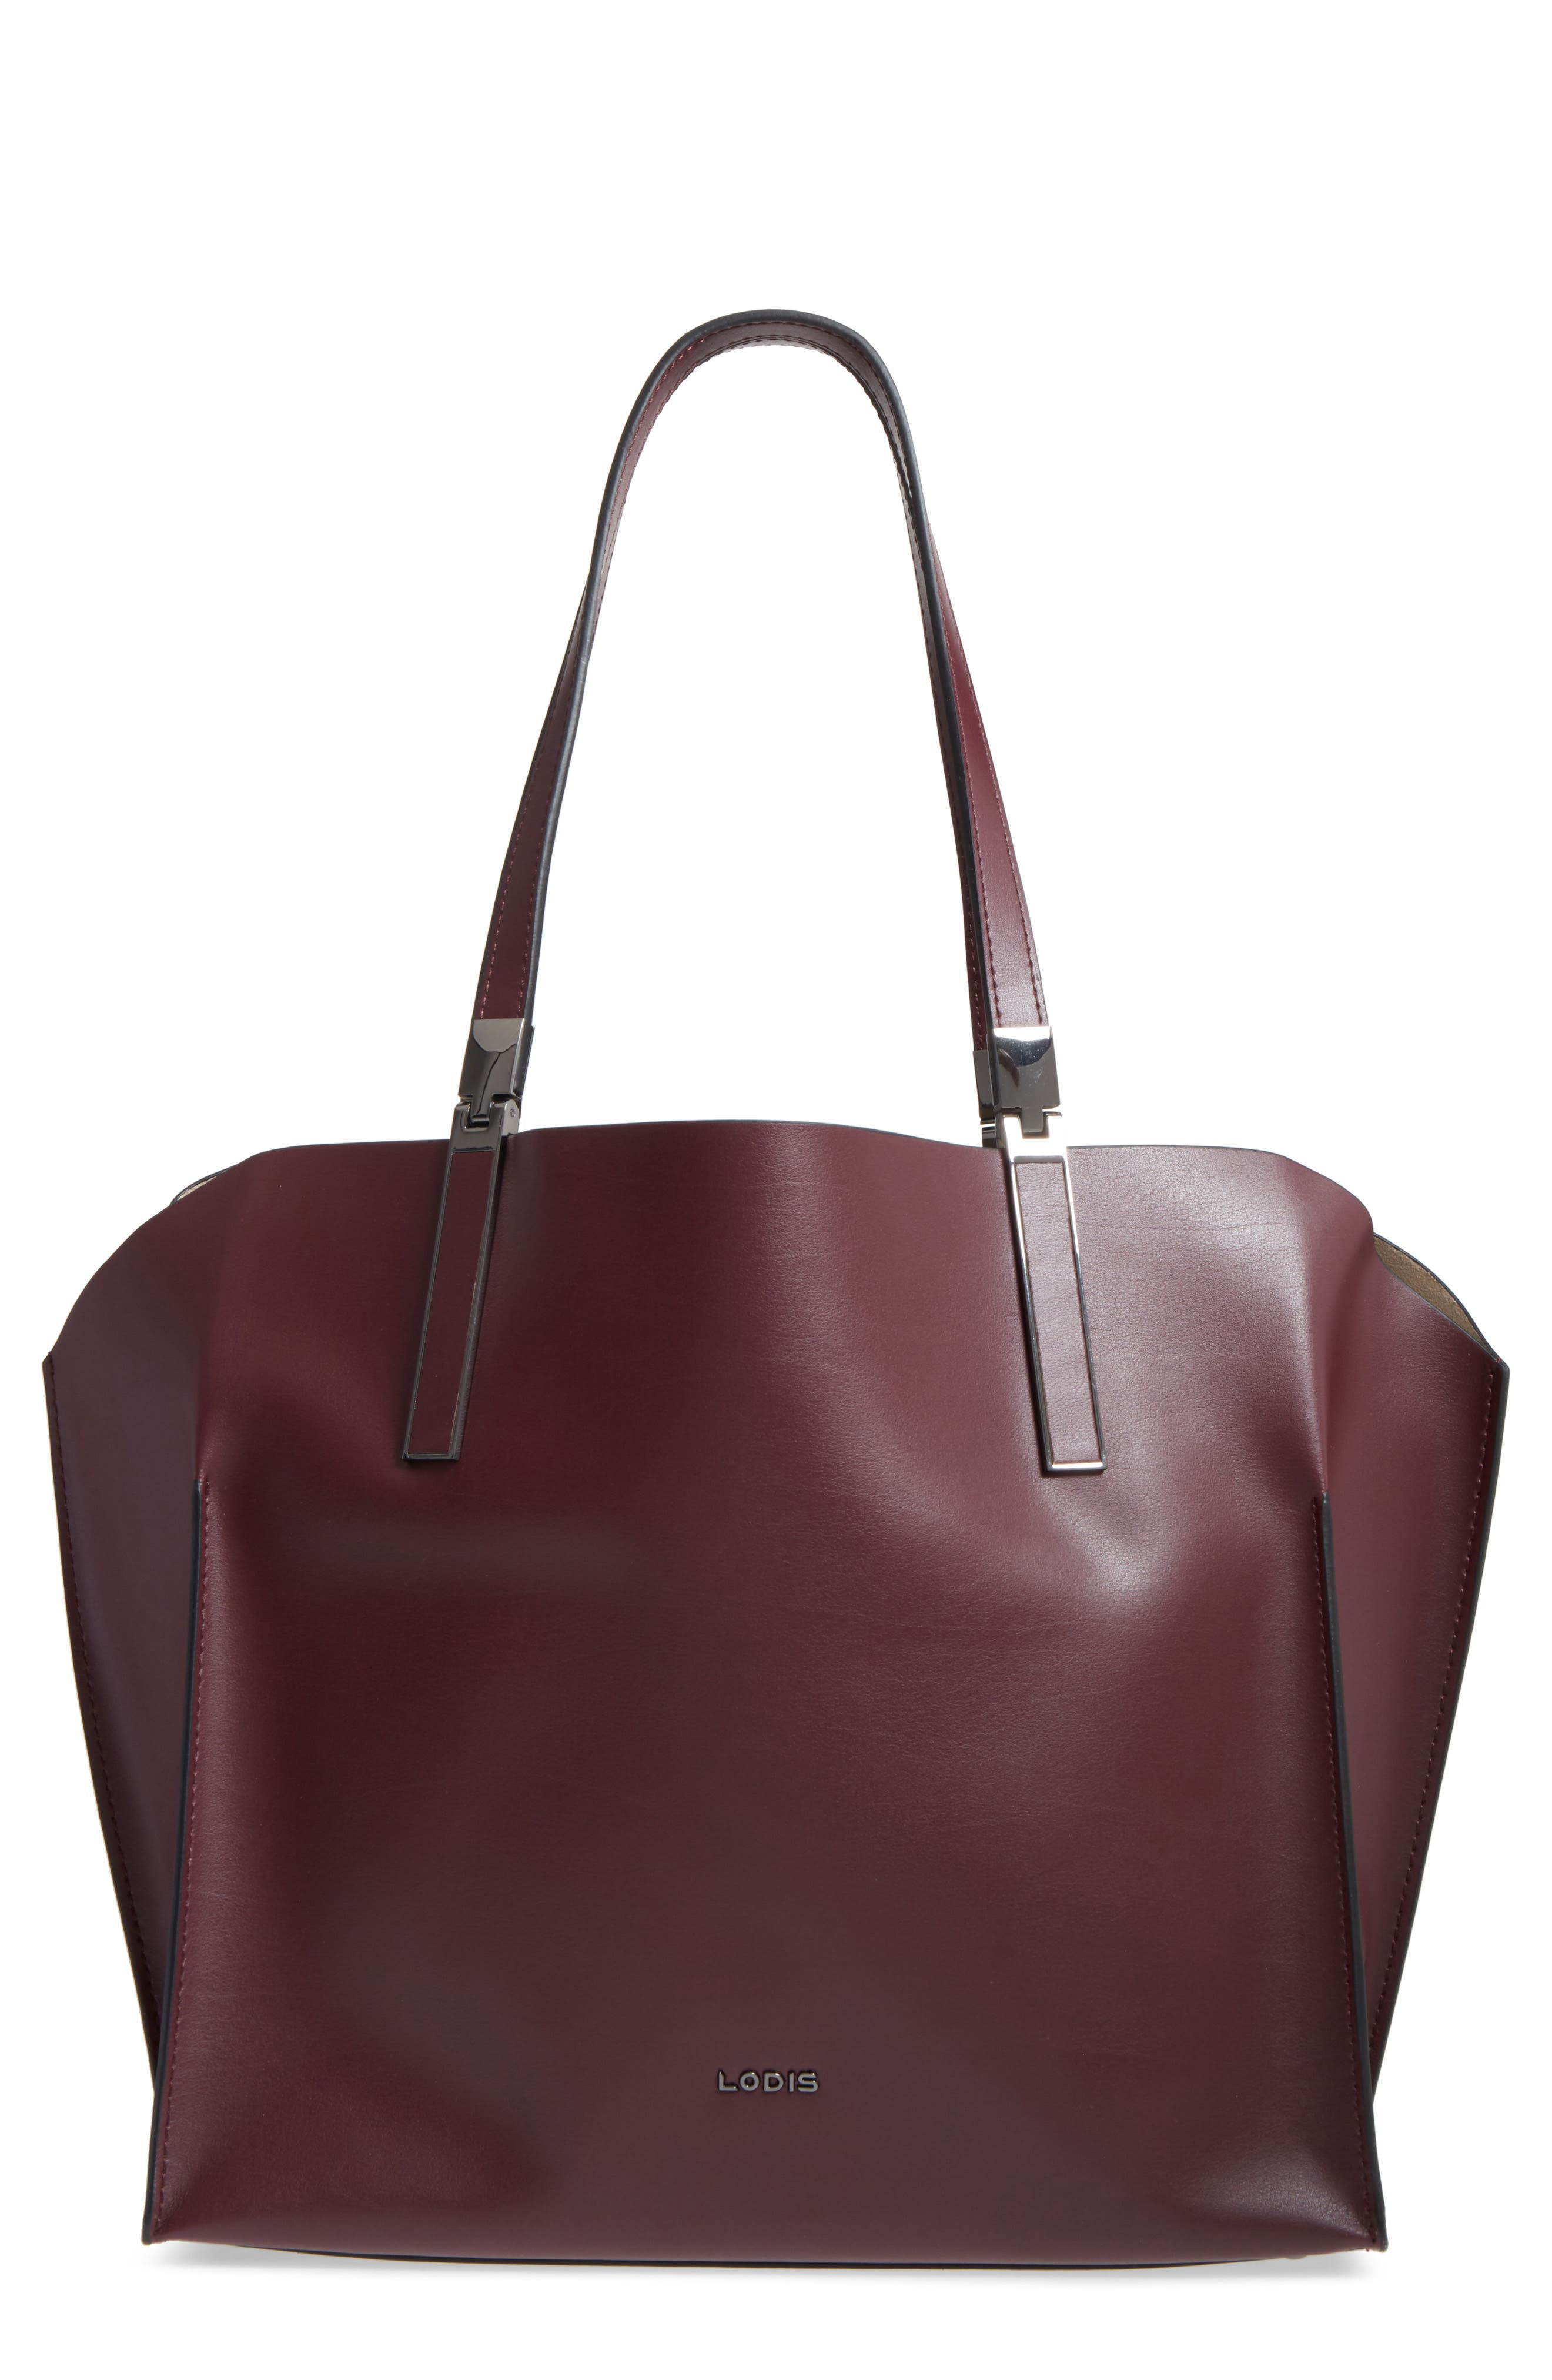 Alternate Image 1 Selected - LODIS Silicon Valley Collection Under Lock & Key - Anita RFID East/West Leather Satchel